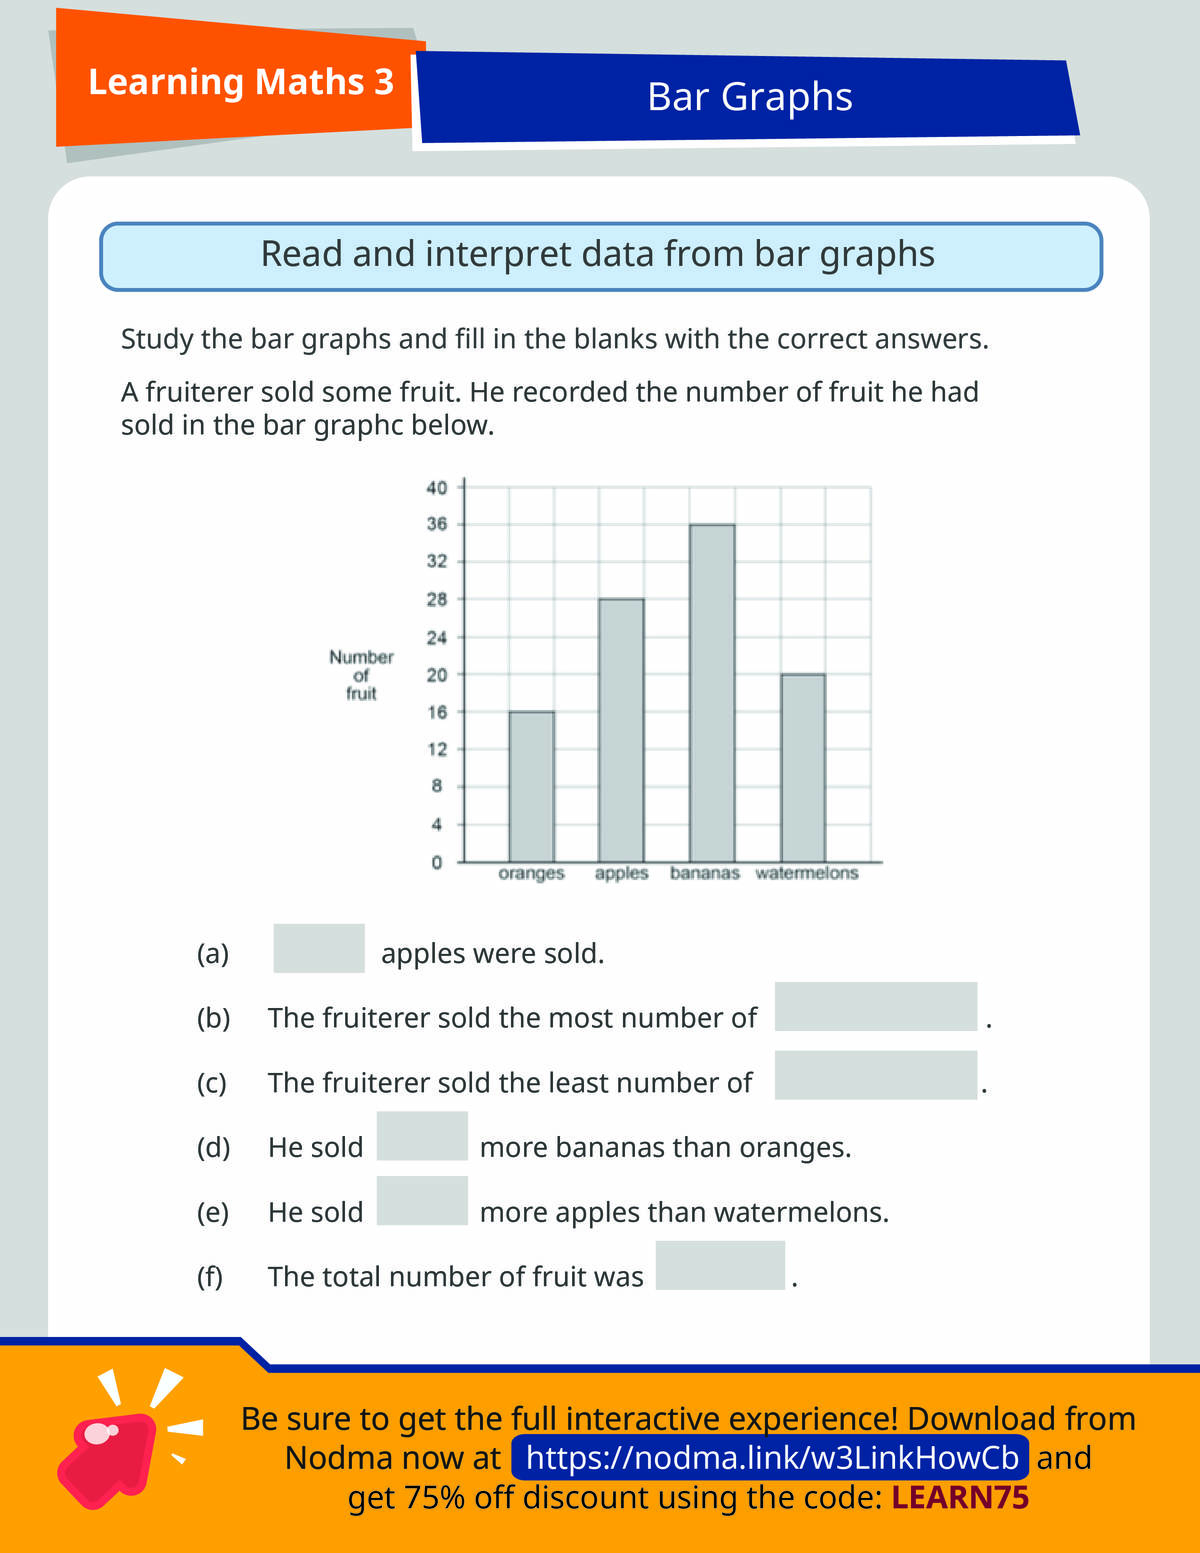 3rd Grade Math: Interpreting Data from Bar Graphs